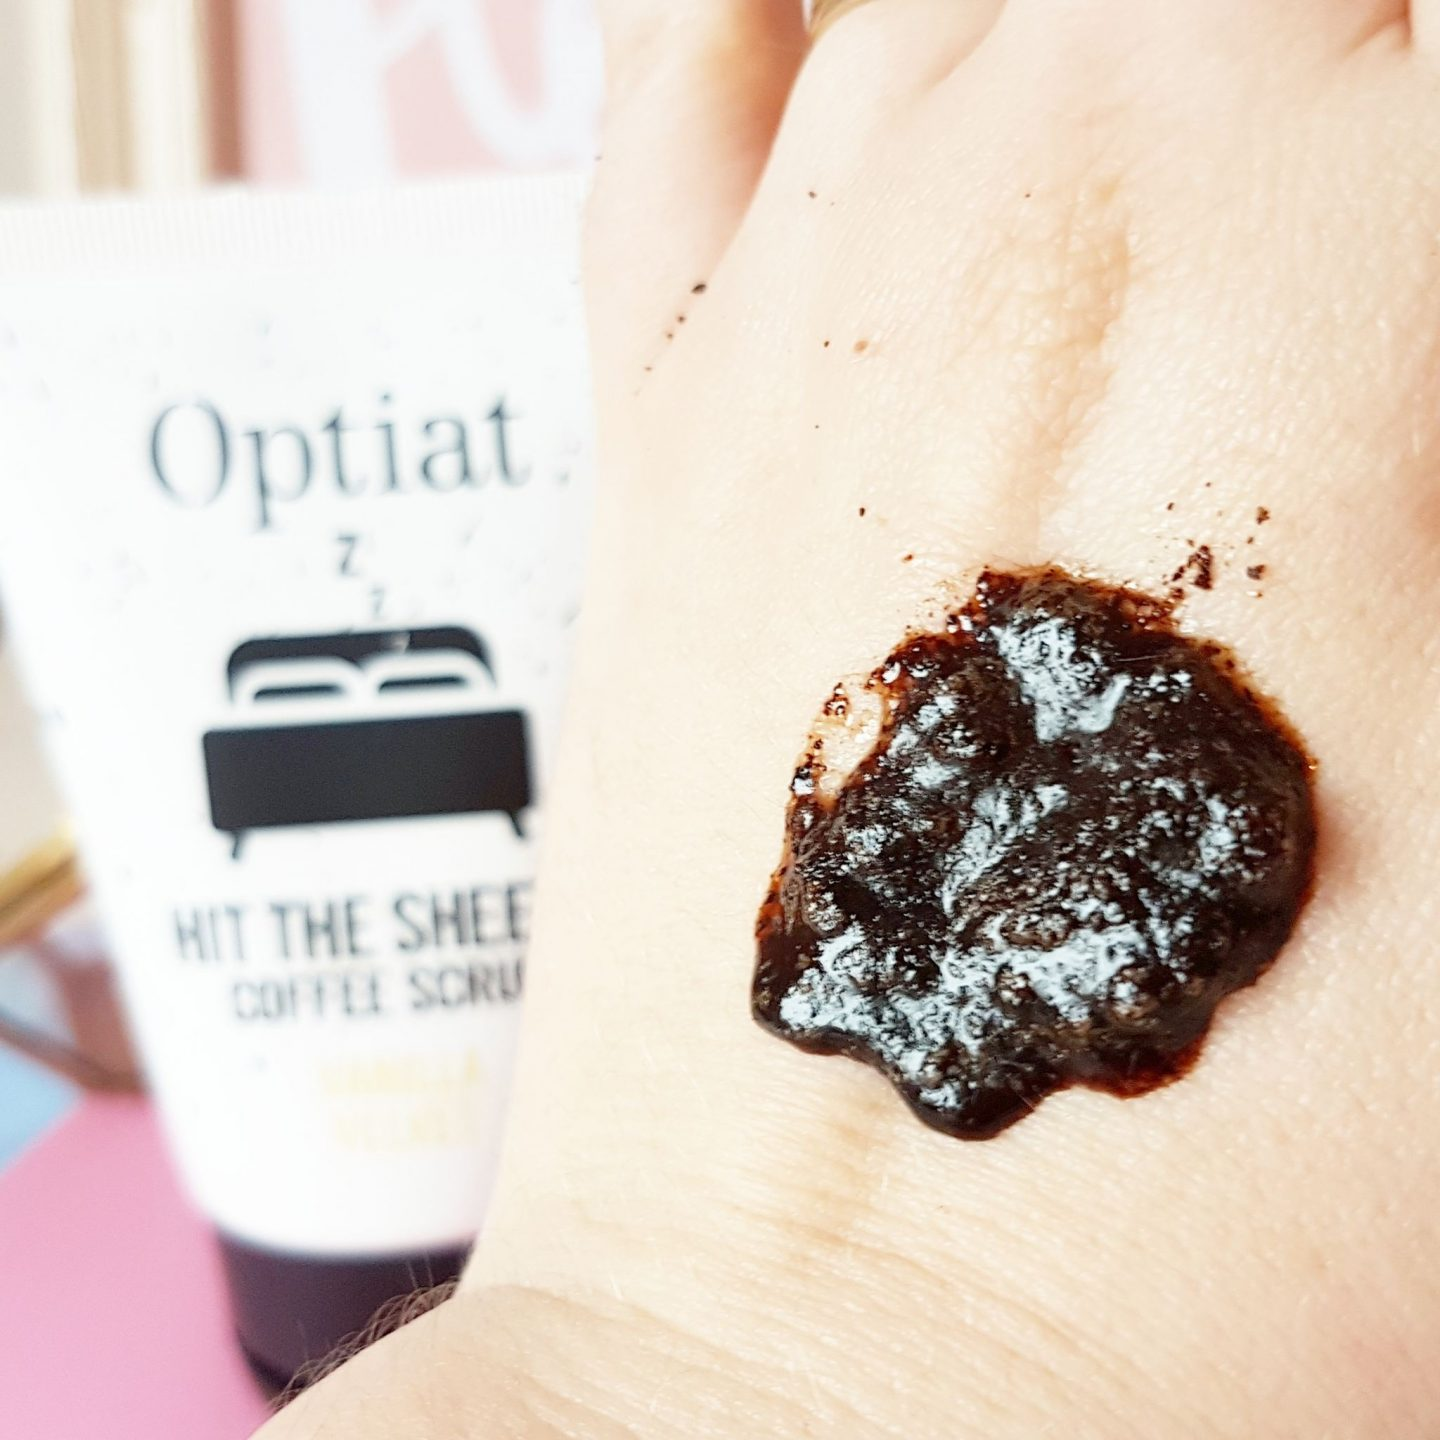 Optiat Hit The Sheets Coffee Scrub in Vanilla Velvet